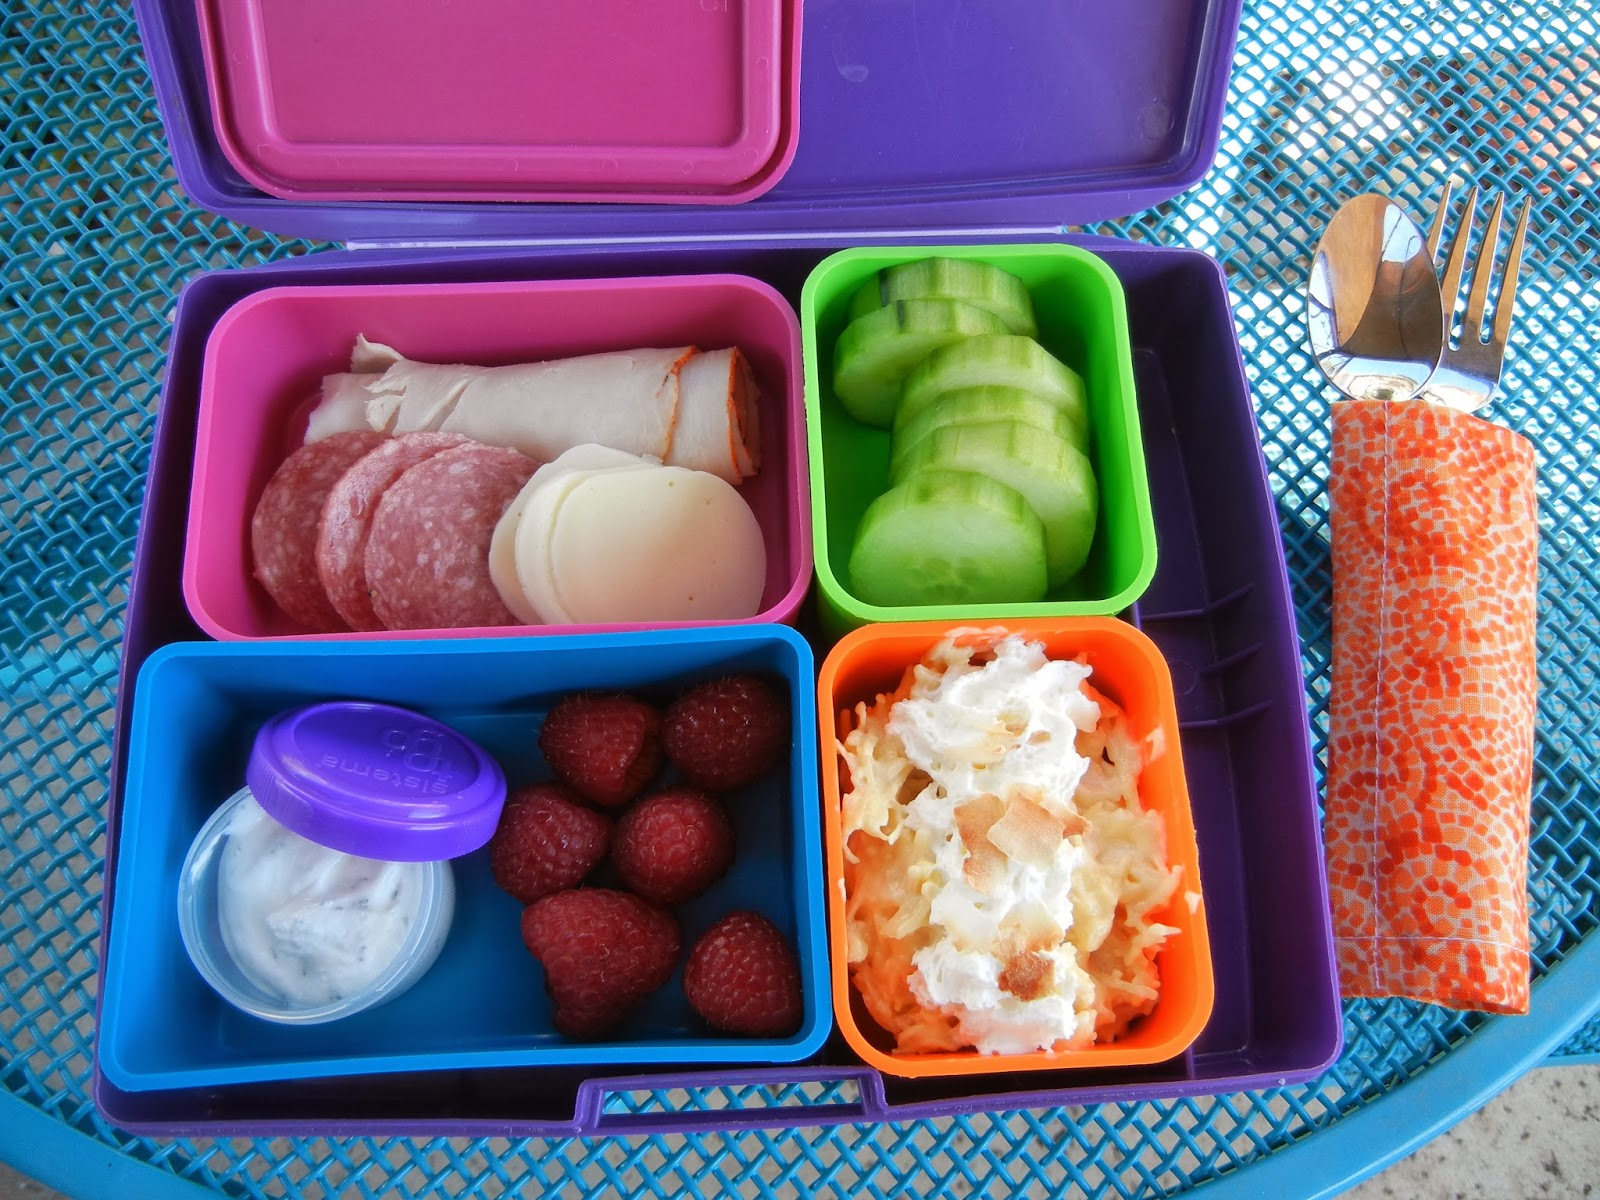 Bento+Box+Lunch+Low+Carb+Eggface Weight Loss Recipes A day in my pouch